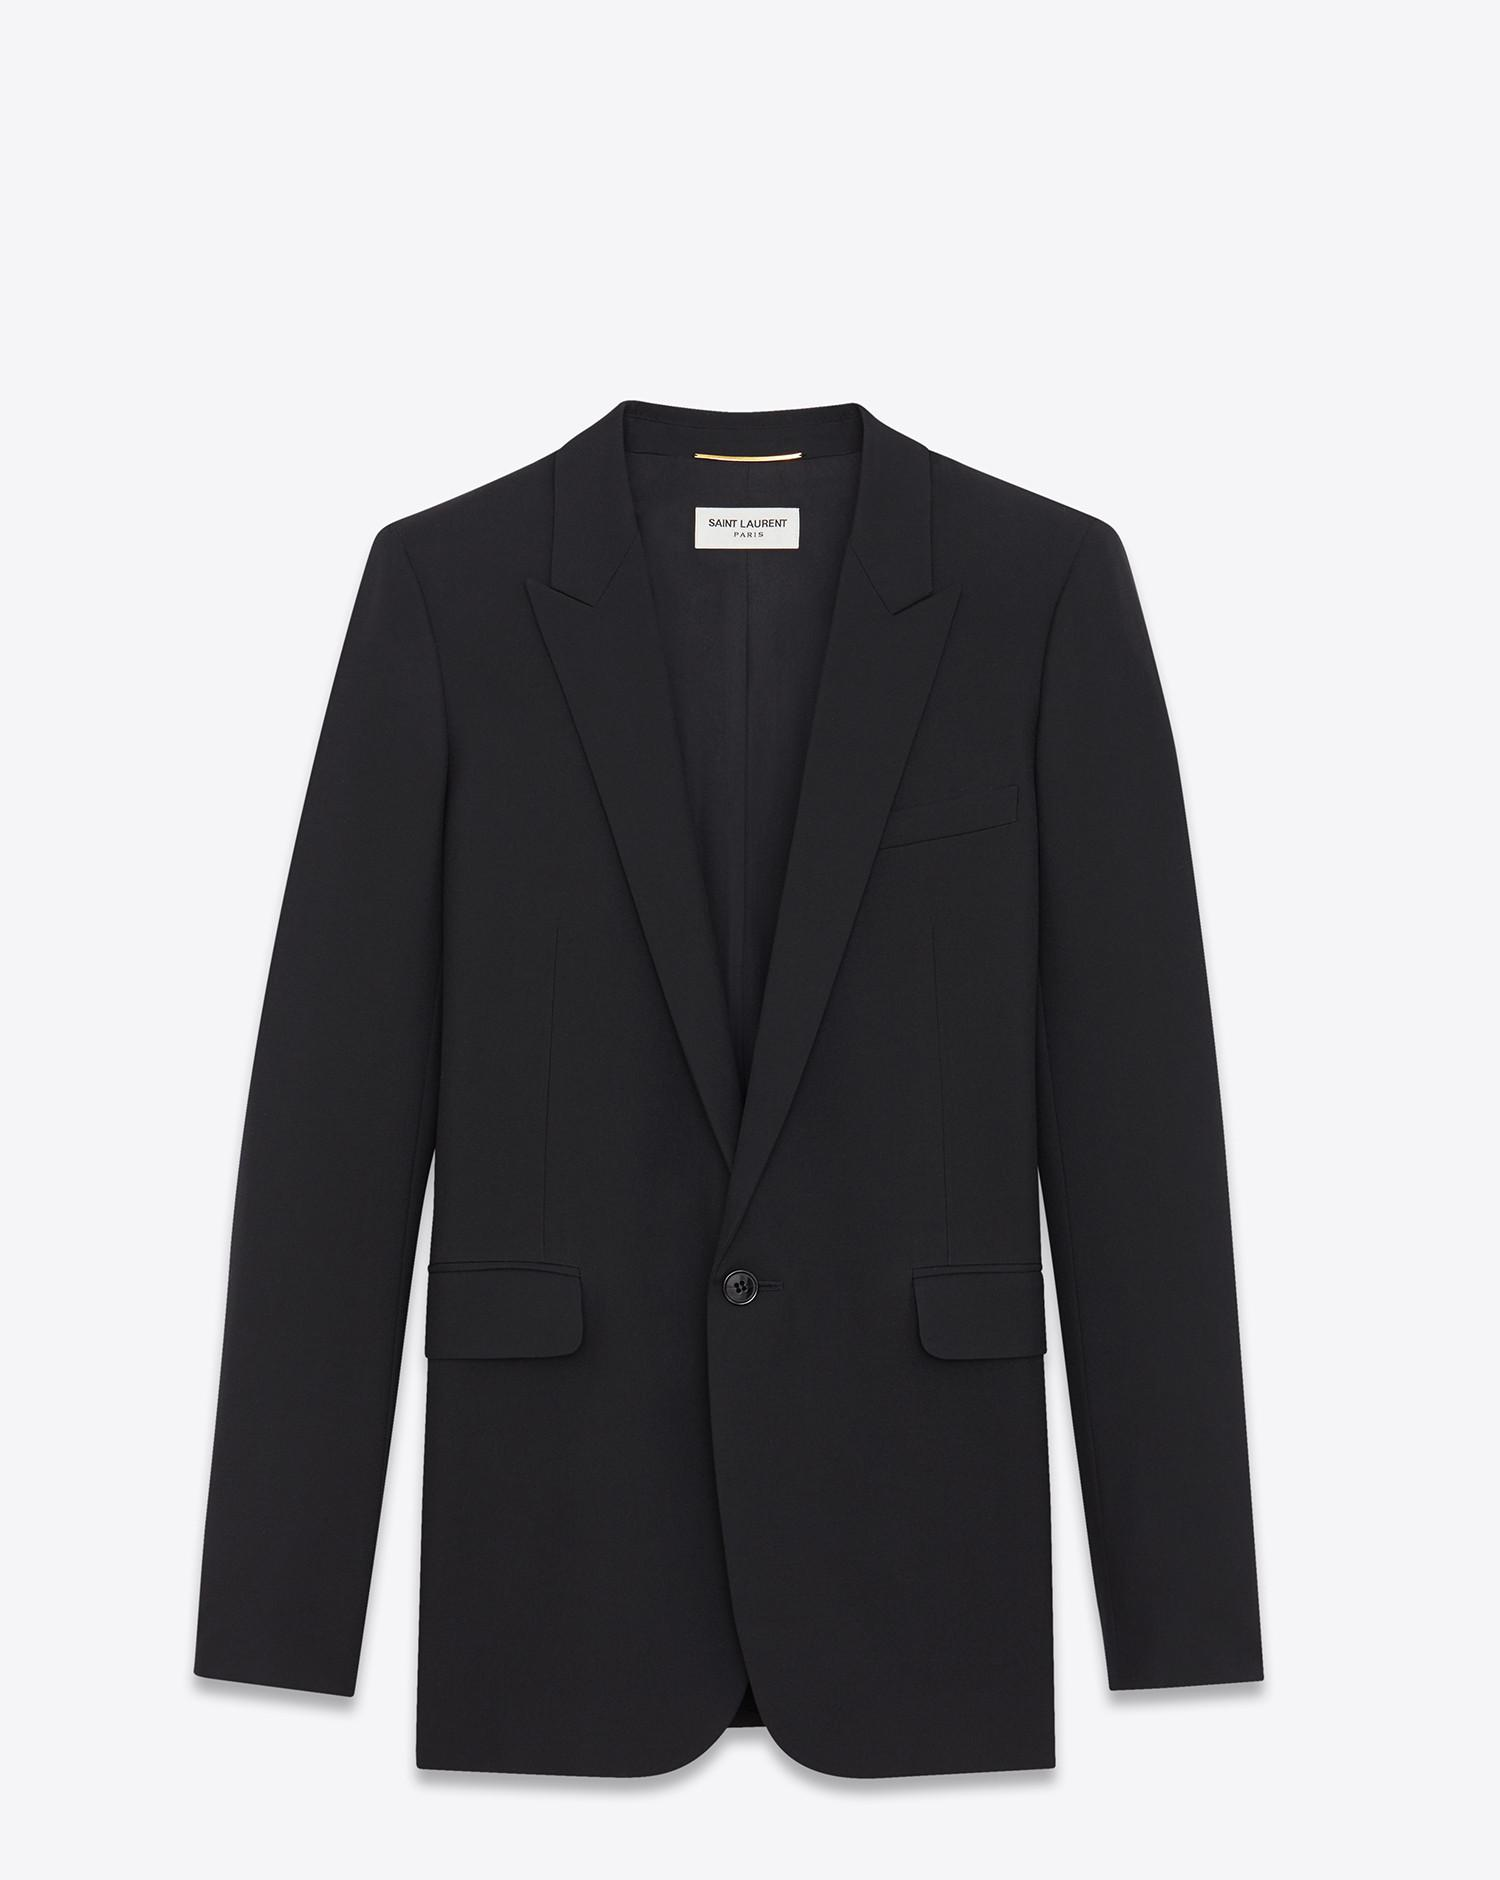 single breasted tube jacket - Black Saint Laurent Cheap Manchester Outlet Cheap Online Outlet Deals cWp2pxVUd